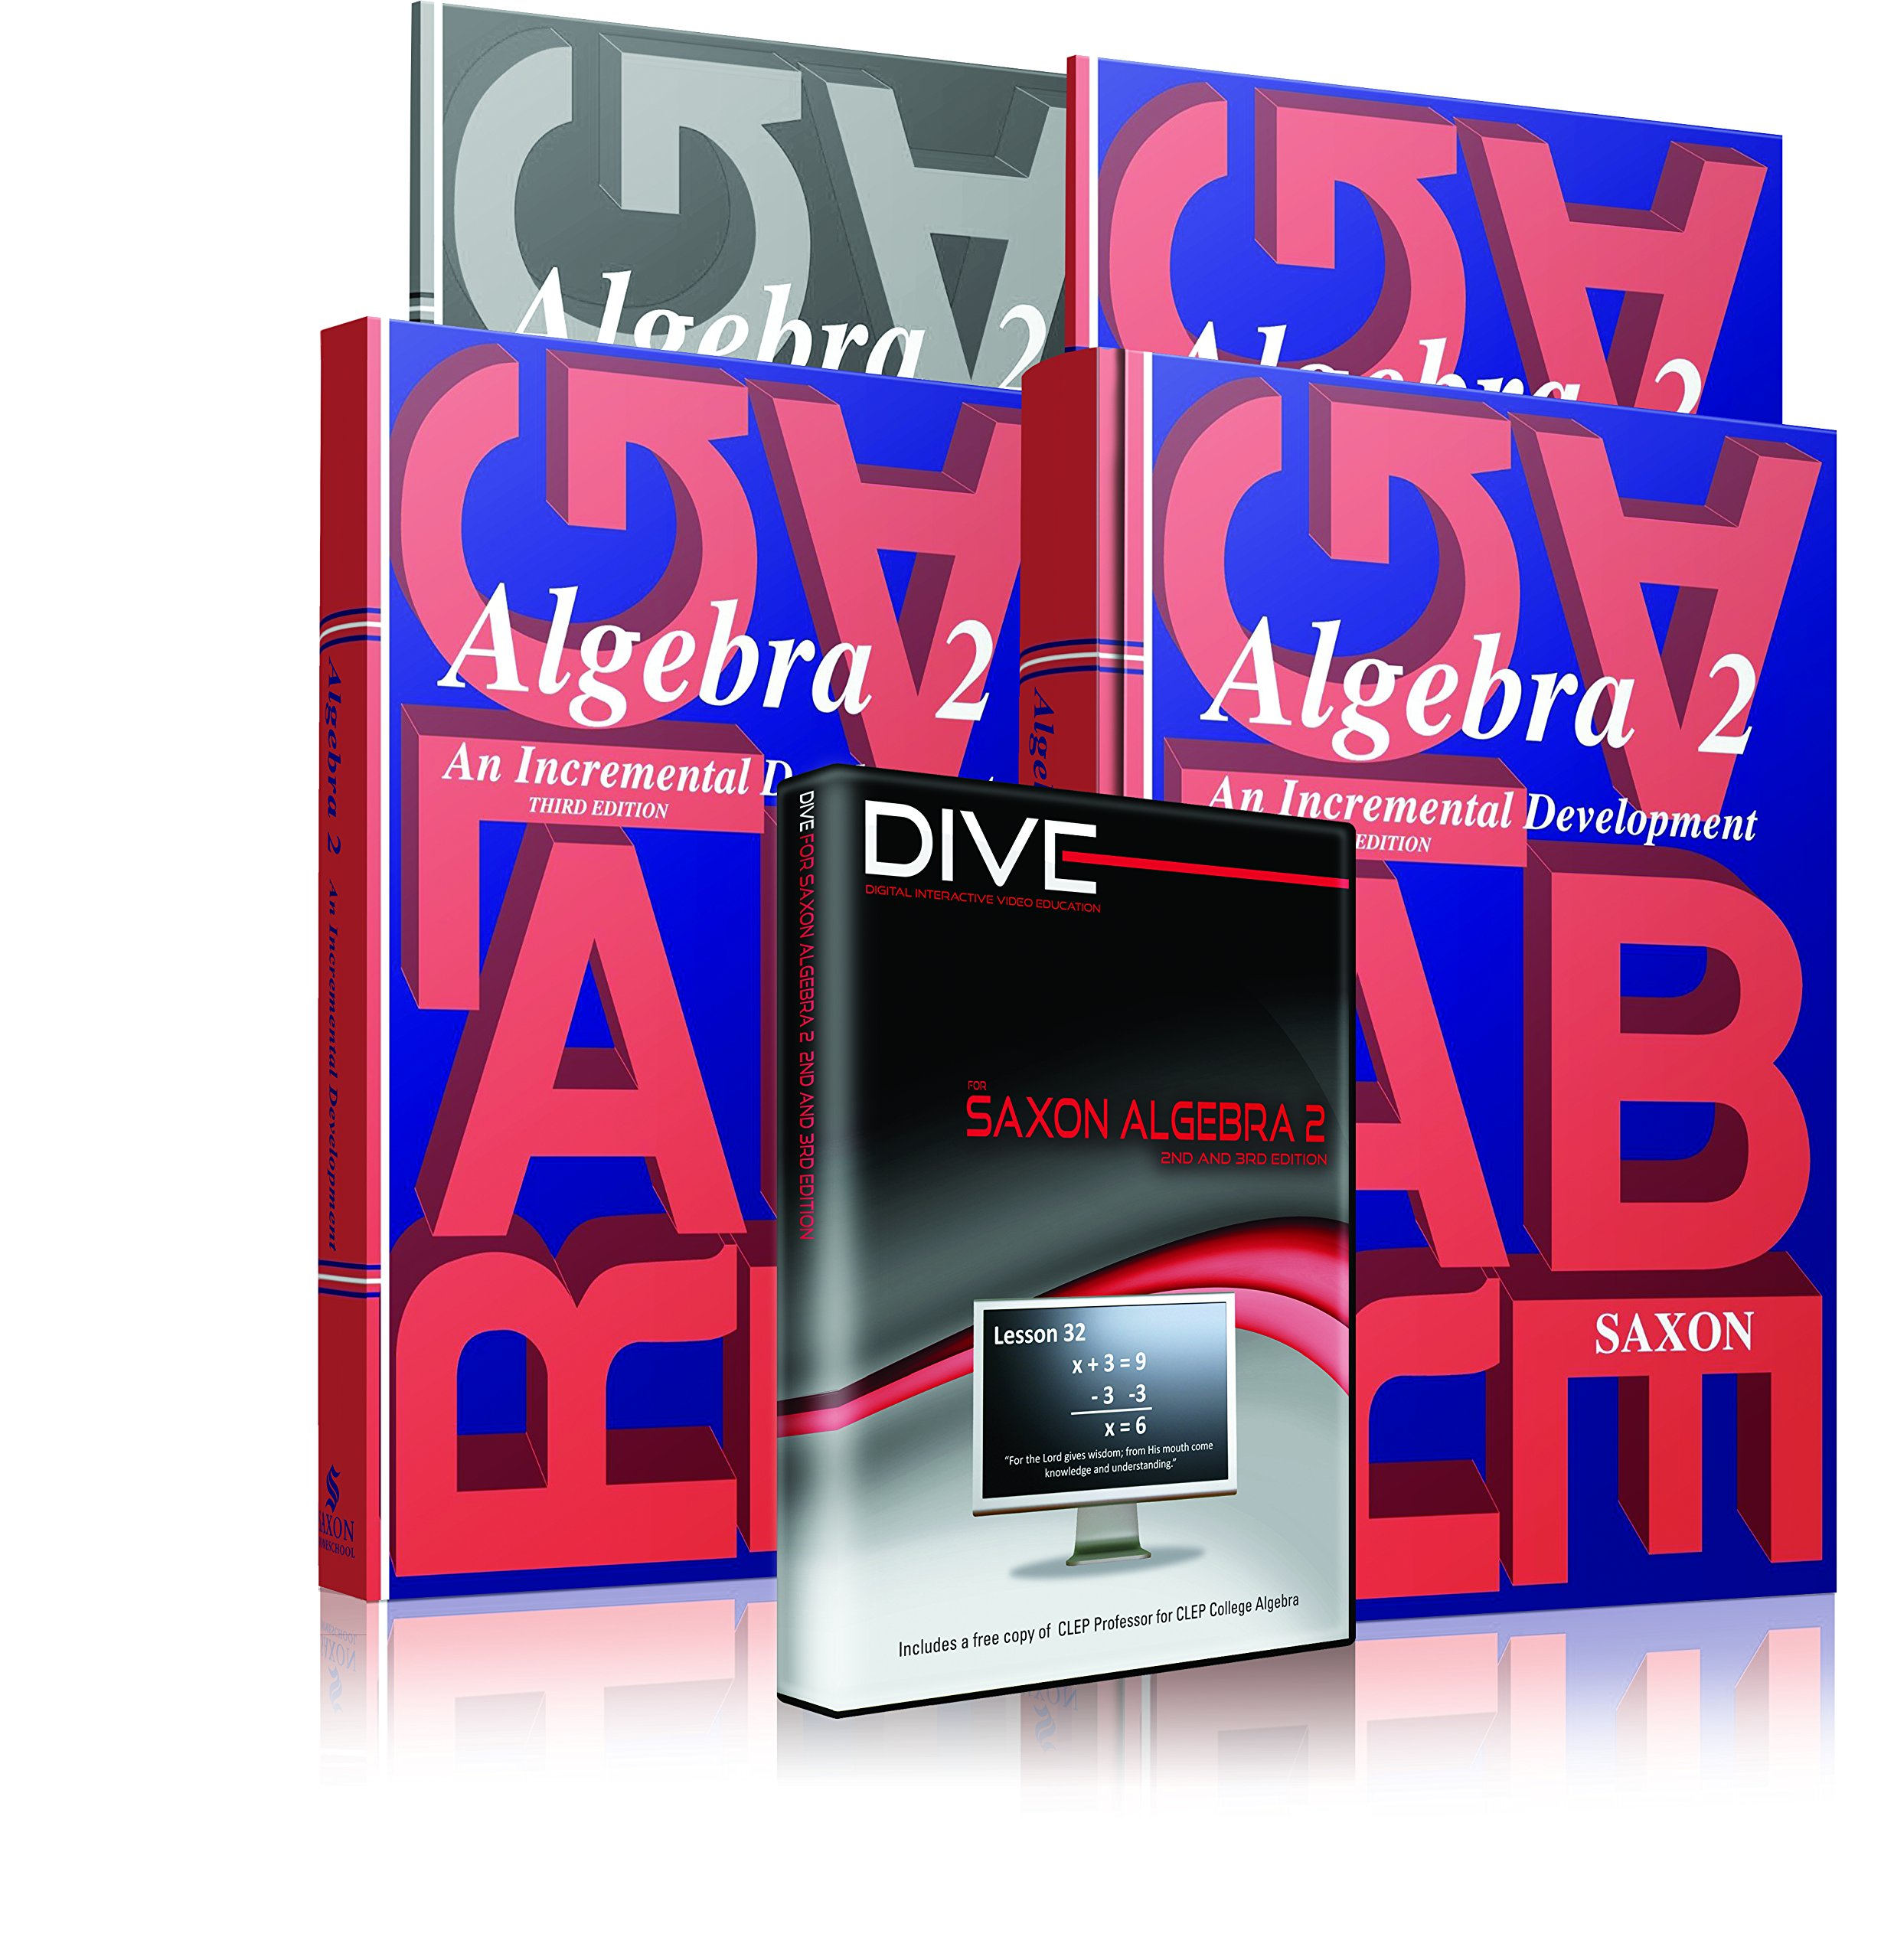 Saxon Algebra 2 3rd Edition Complete Kit w/Solutions Manual & DIVE  Instructional CD: John Saxon, Dr. David Shormann, PhD David Shormann:  0837654021859: ...